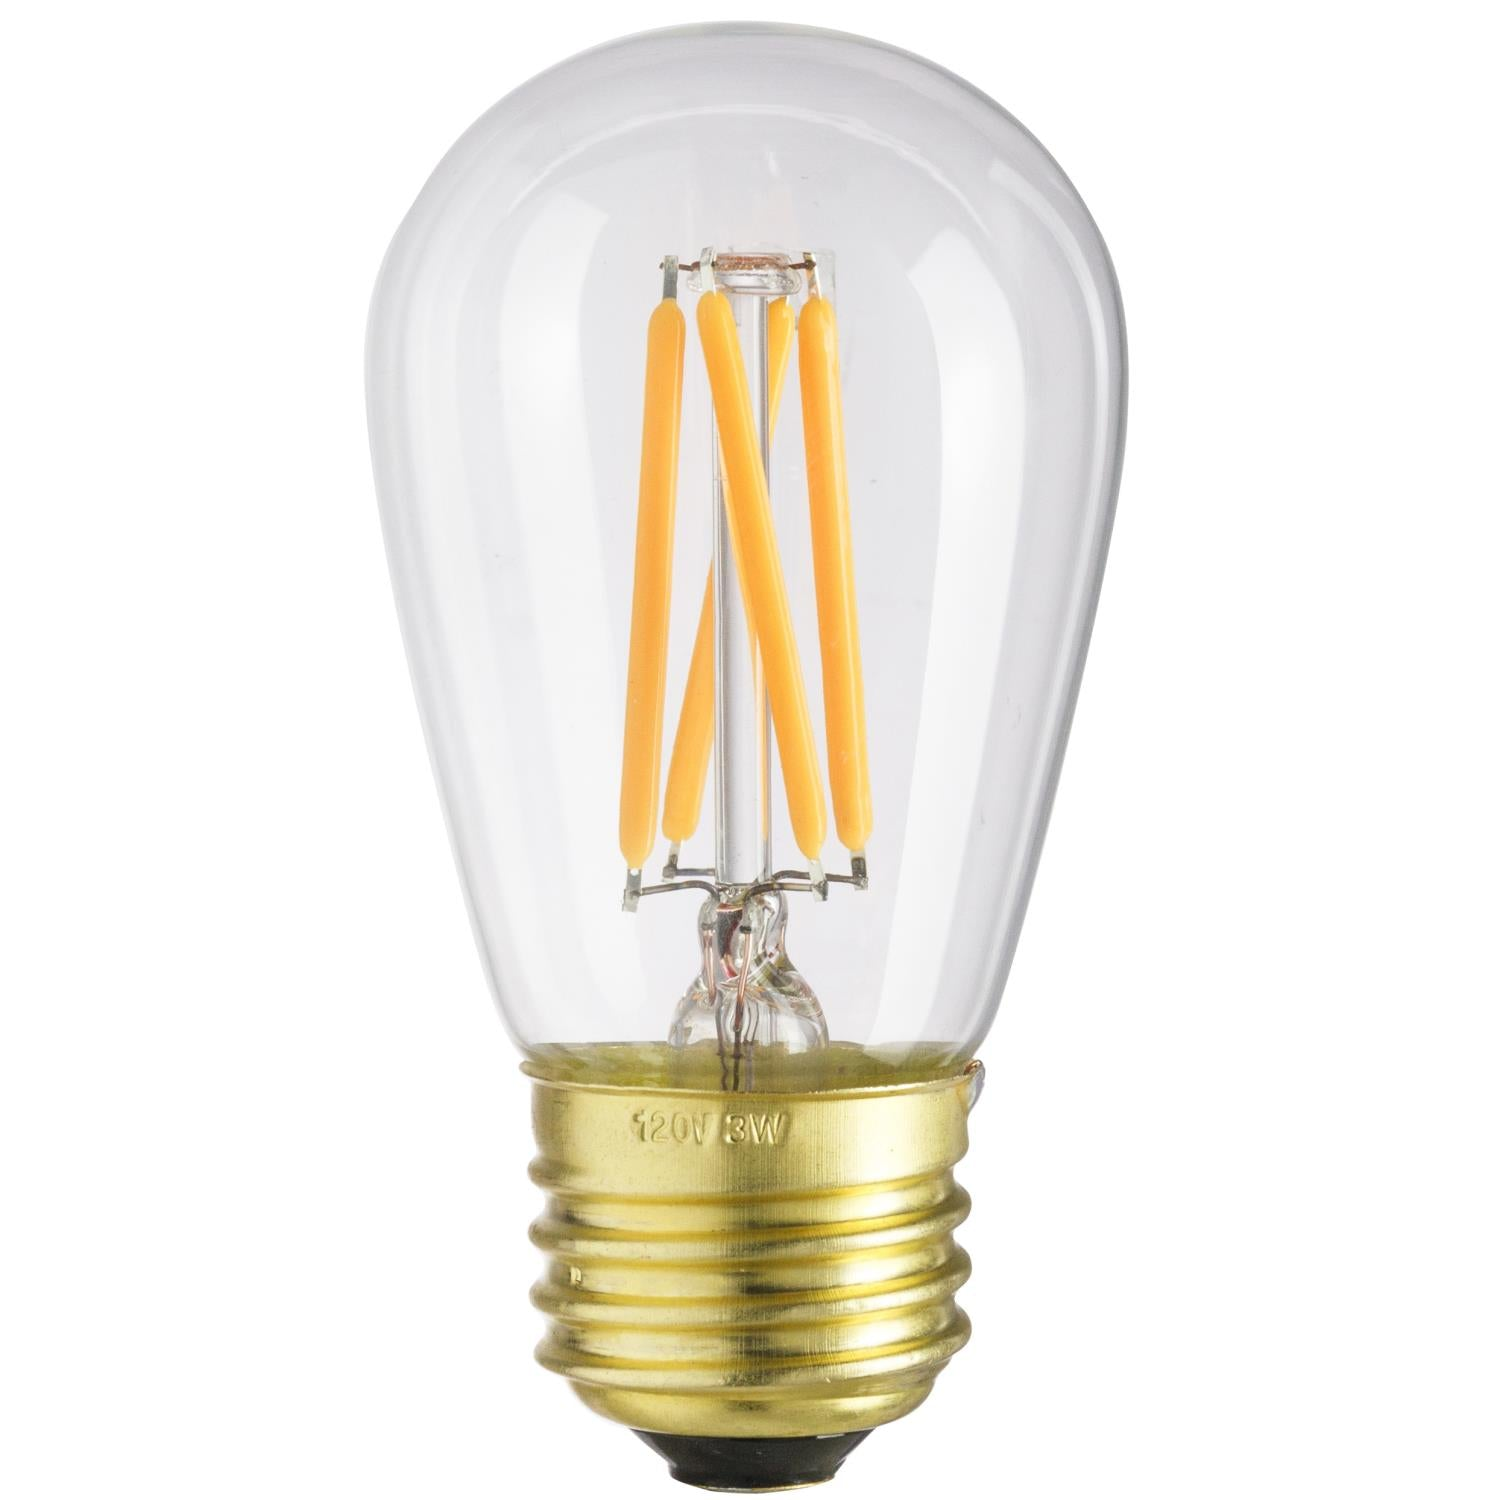 SUNLITE 80462-SU LED Vintage S11 3w Light Bulb Medium (E26) Base Warm White